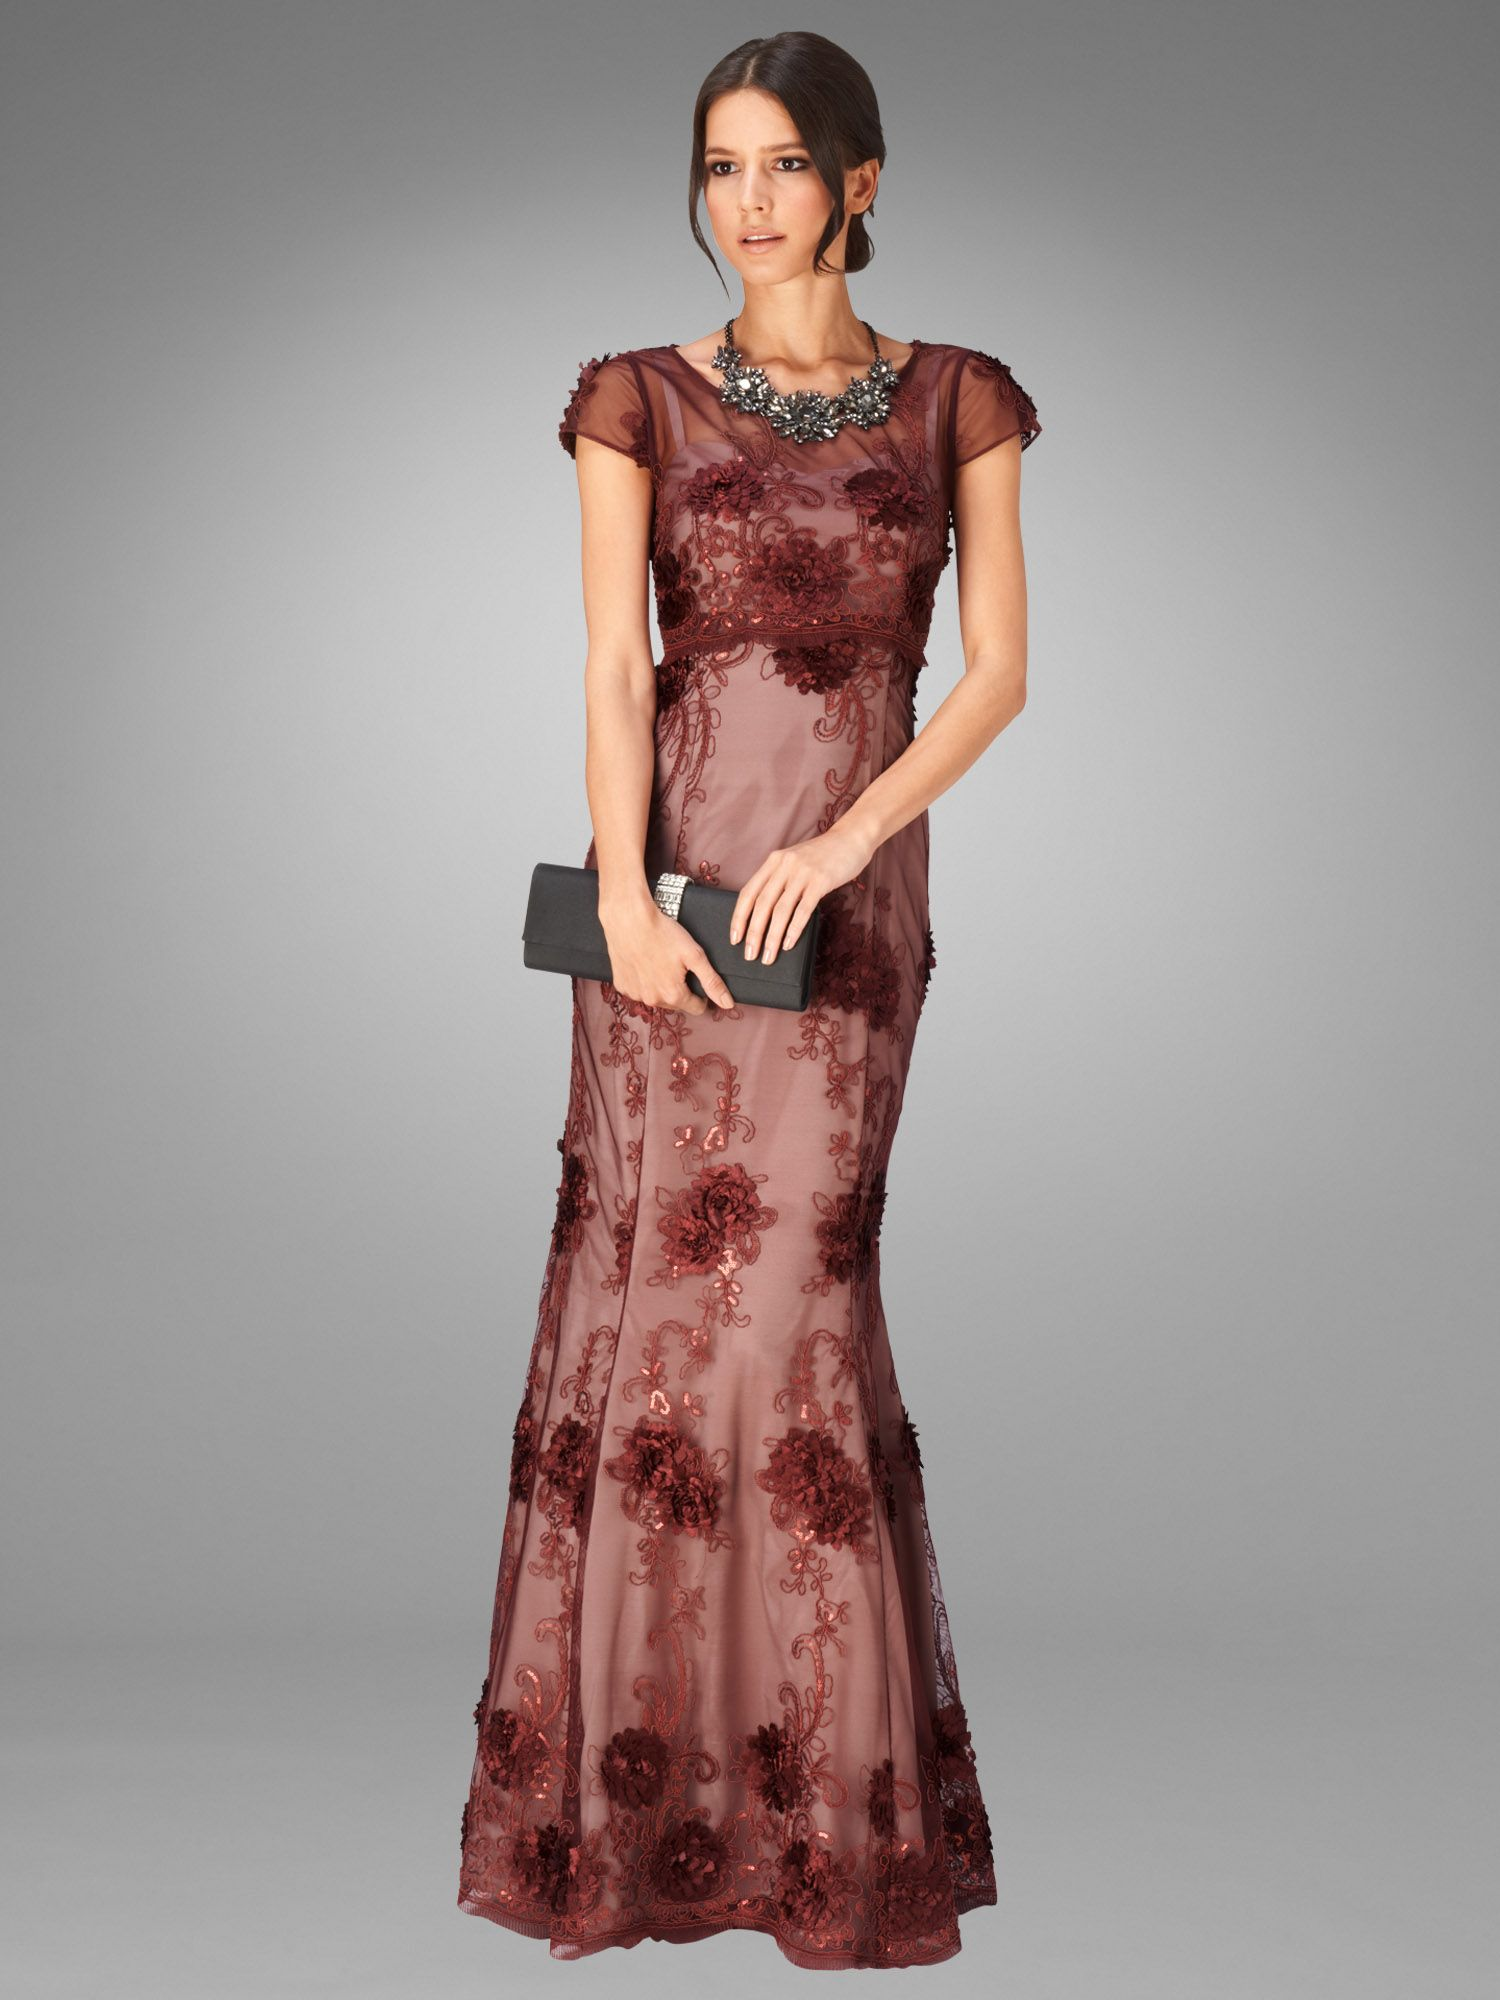 Emanuela petals full length dress